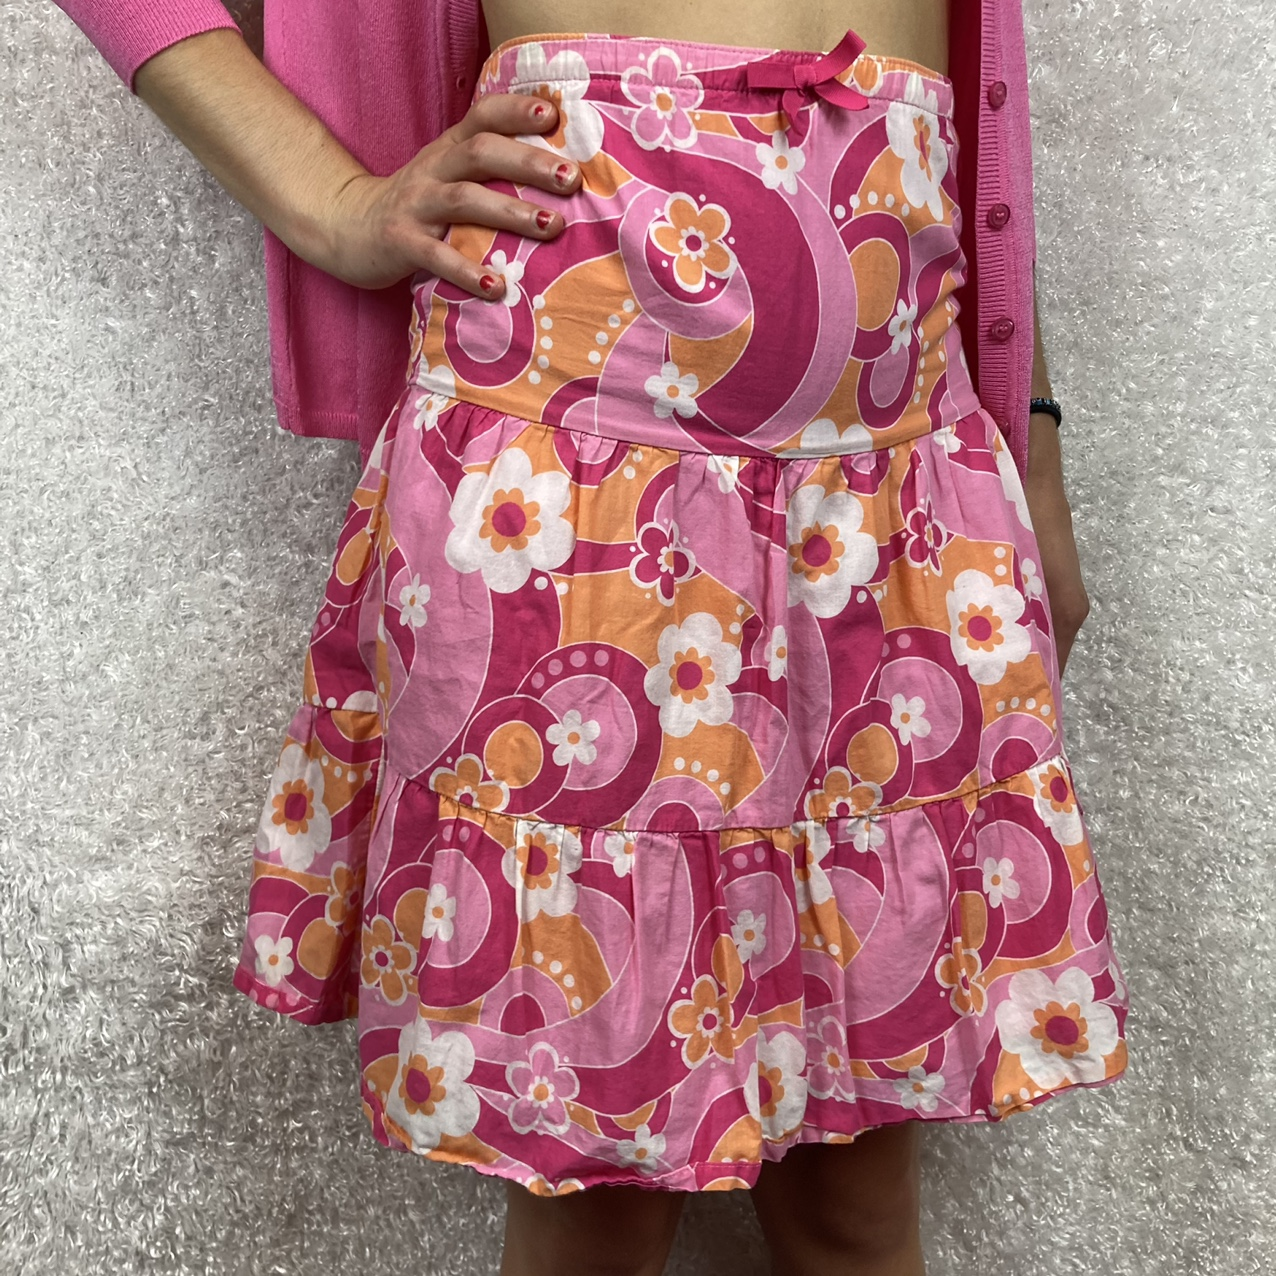 Product Image 1 - Bright pink and orange floral